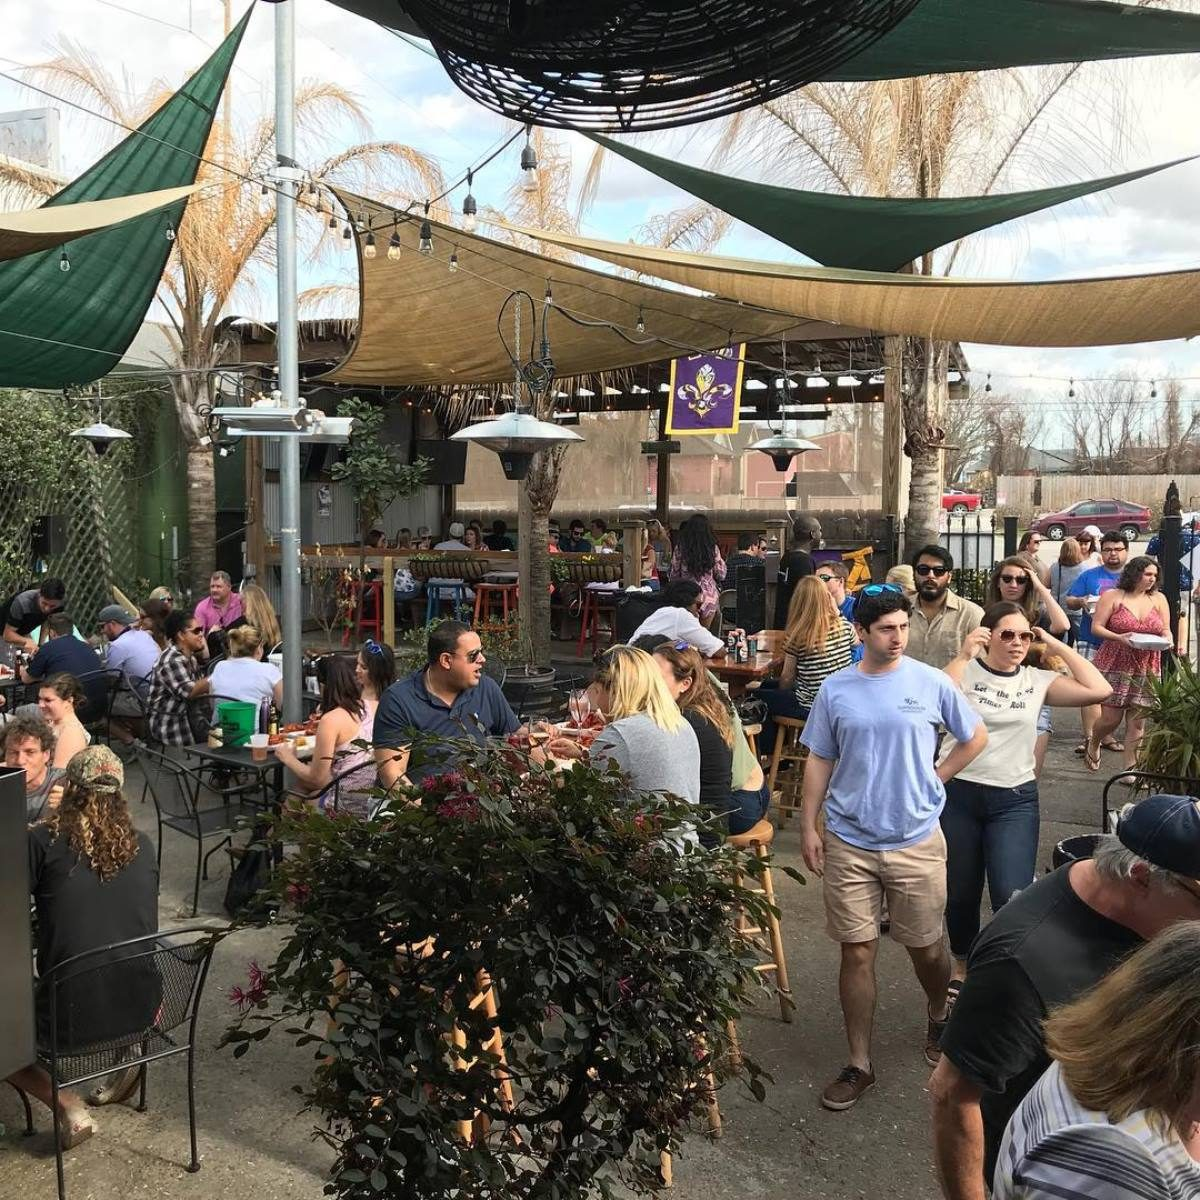 People enjoying the Bayou Beer Garden